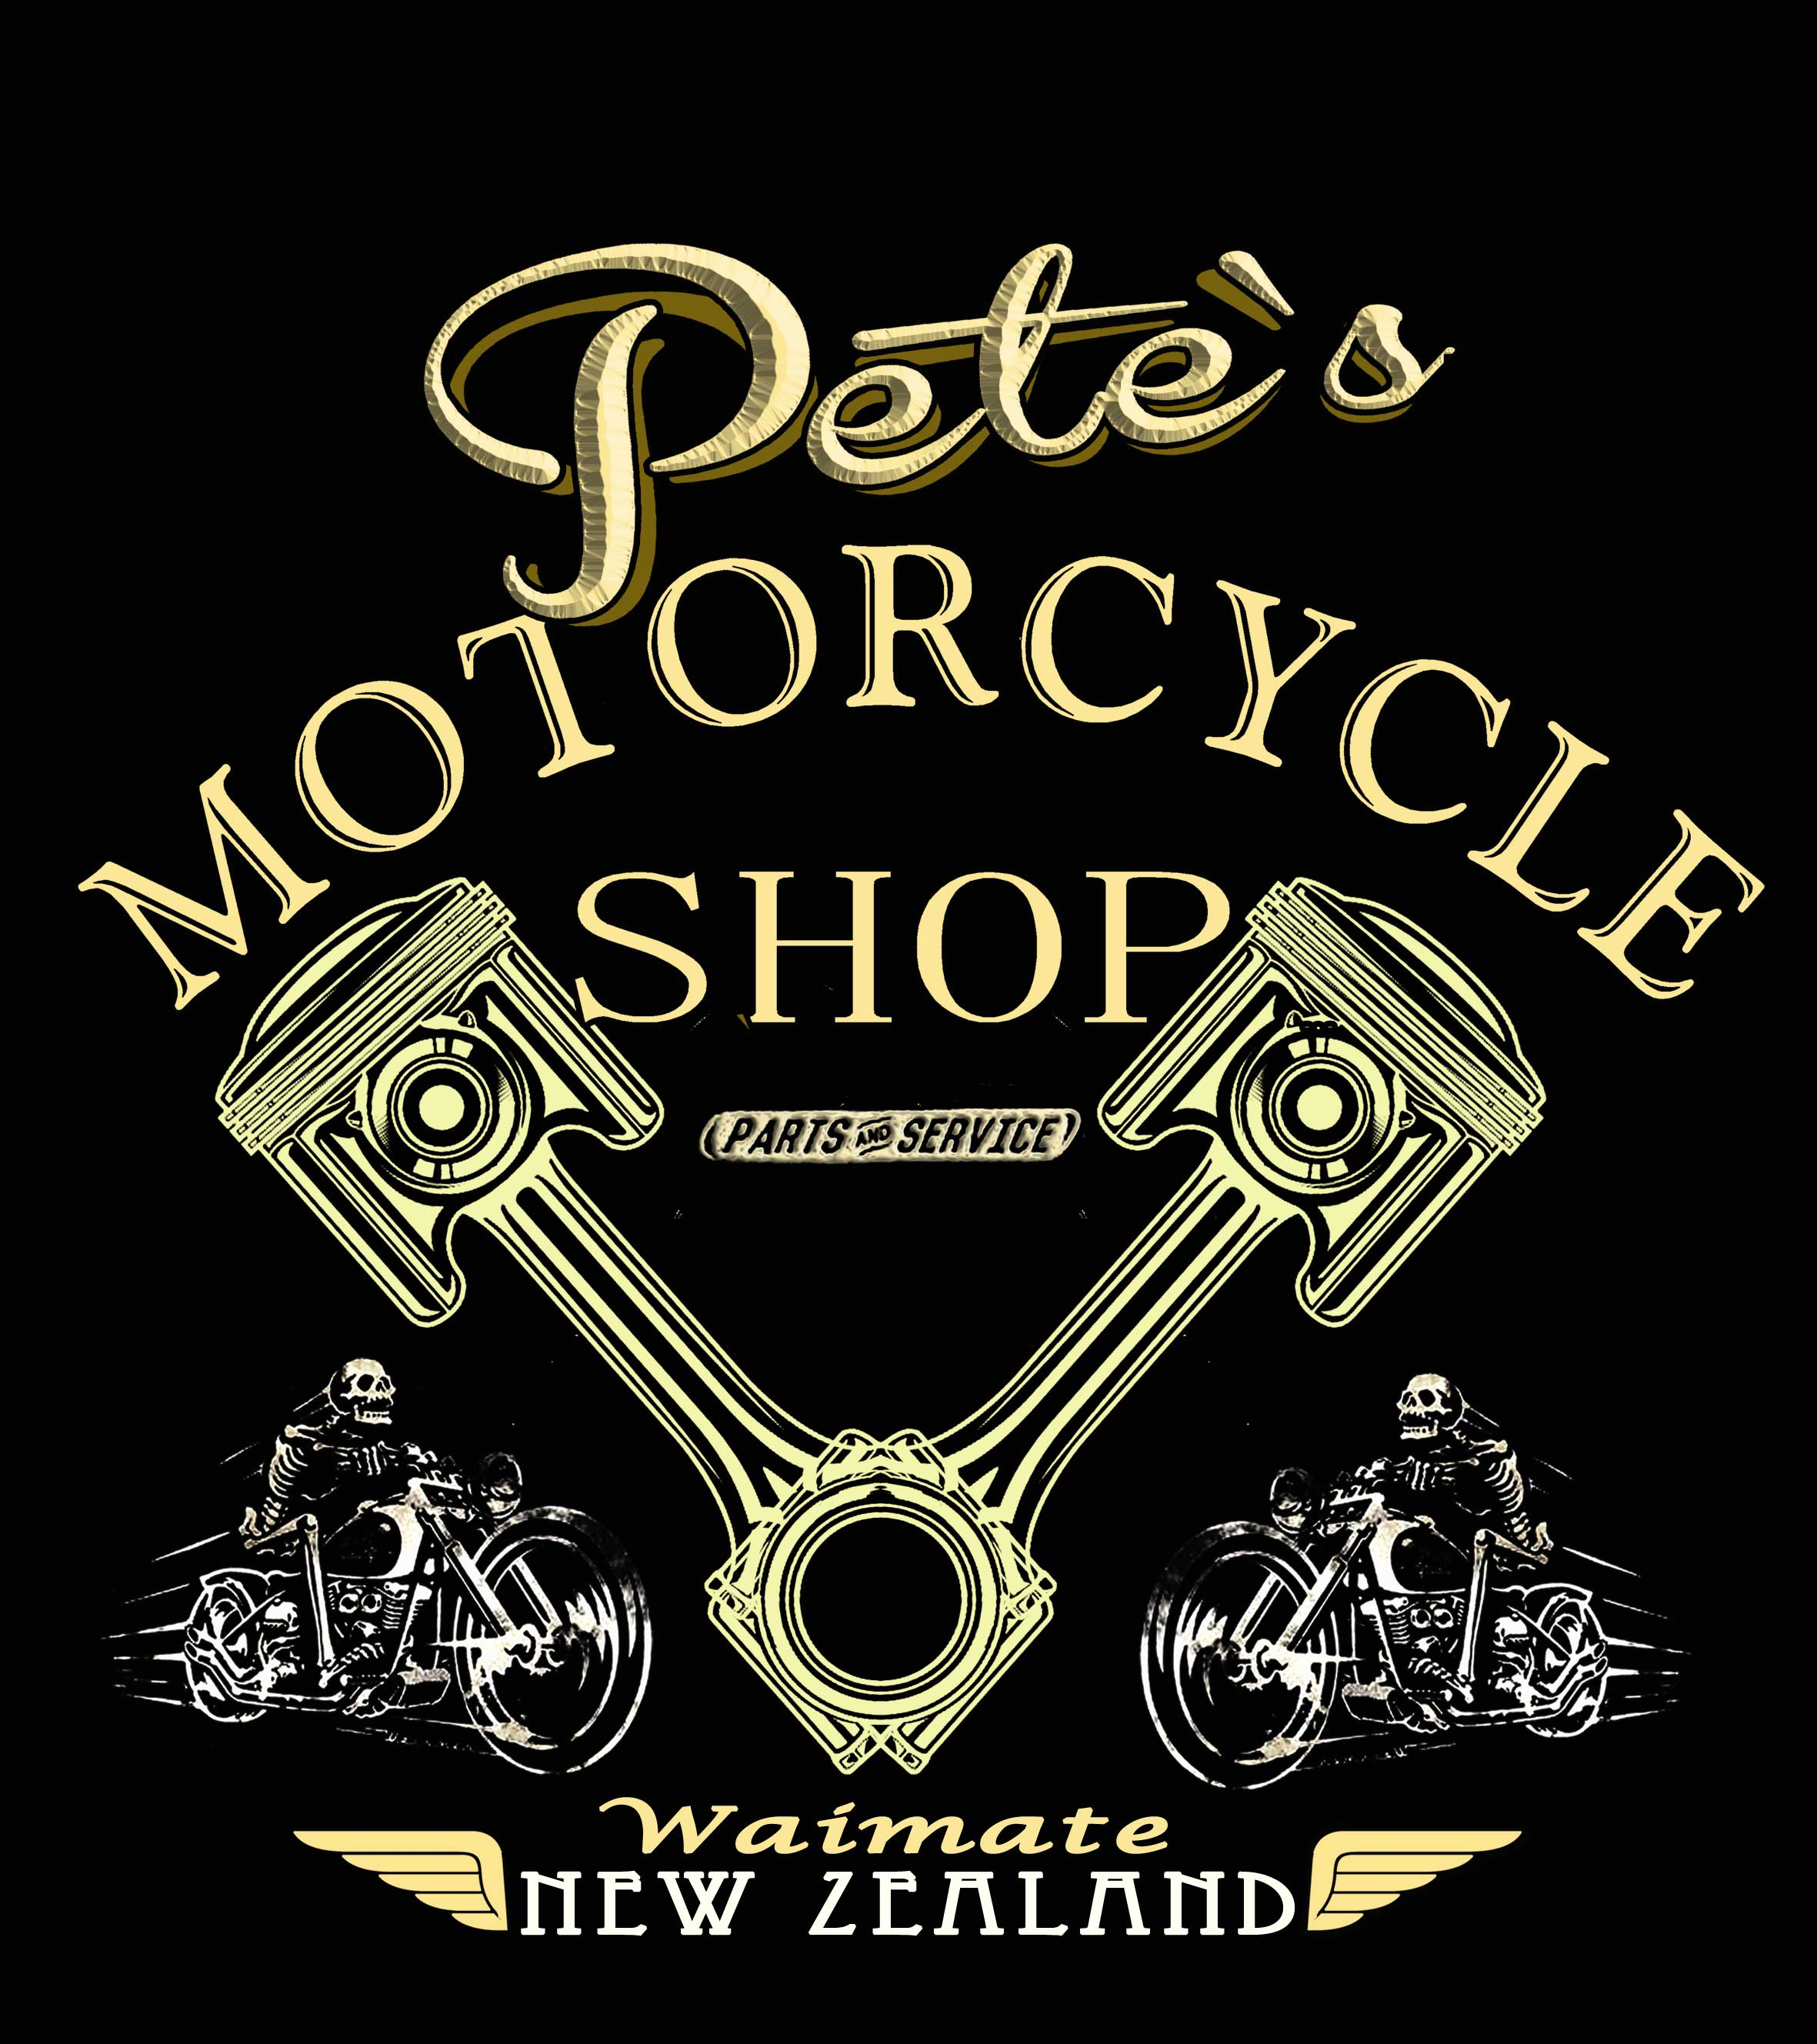 Pete's Motorcycle Shop